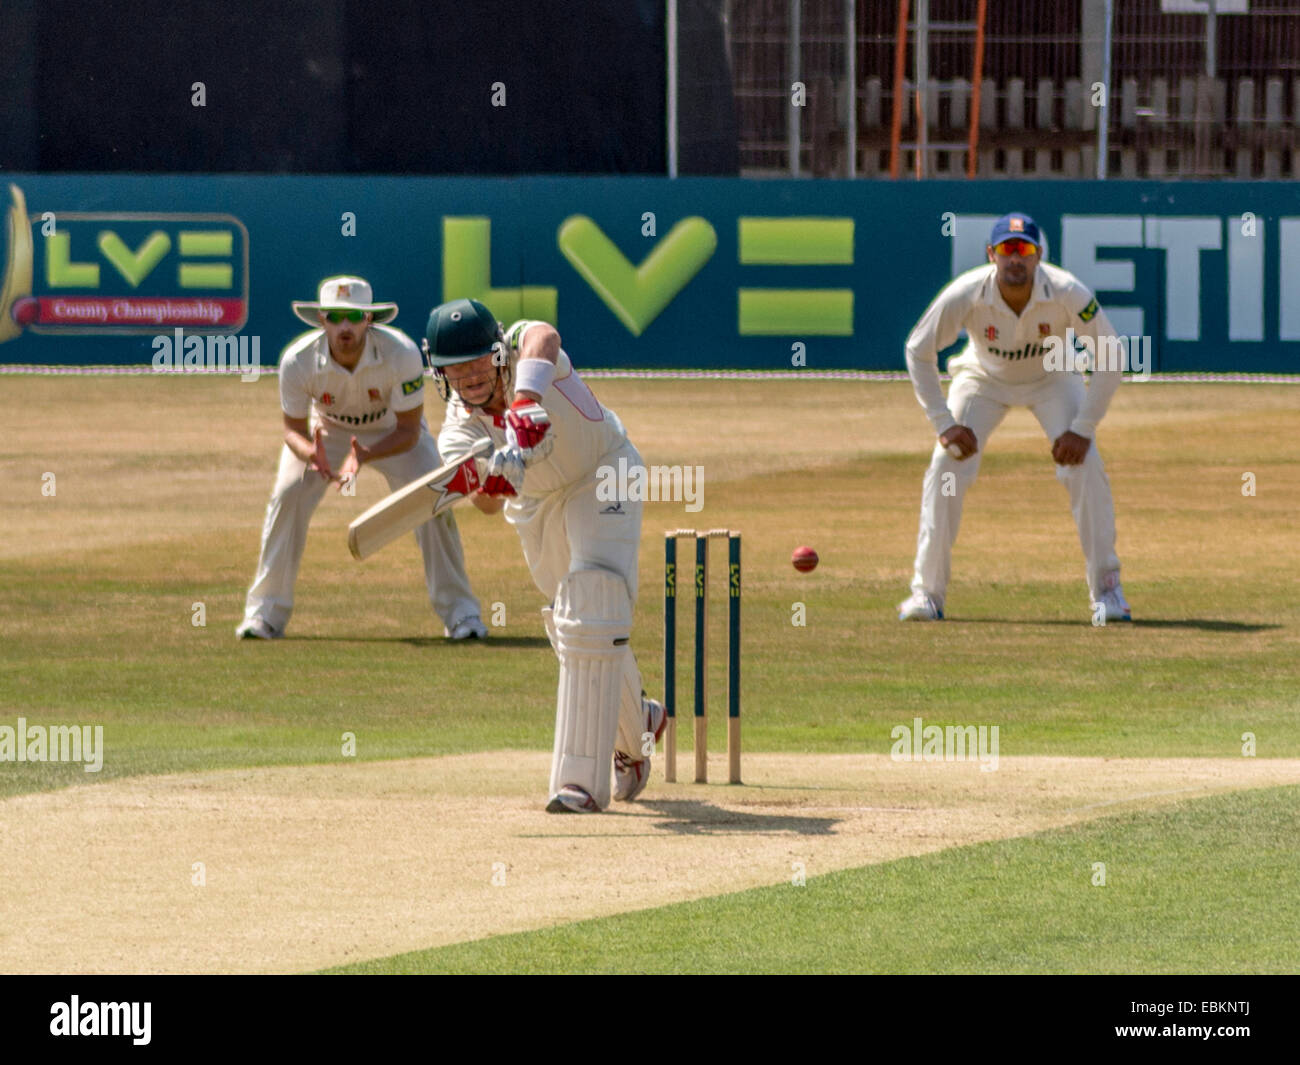 County Championship Division Two, July 2013, Essex vs. Leicestershire. Essex win by an innings and 25 runs - Stock Image